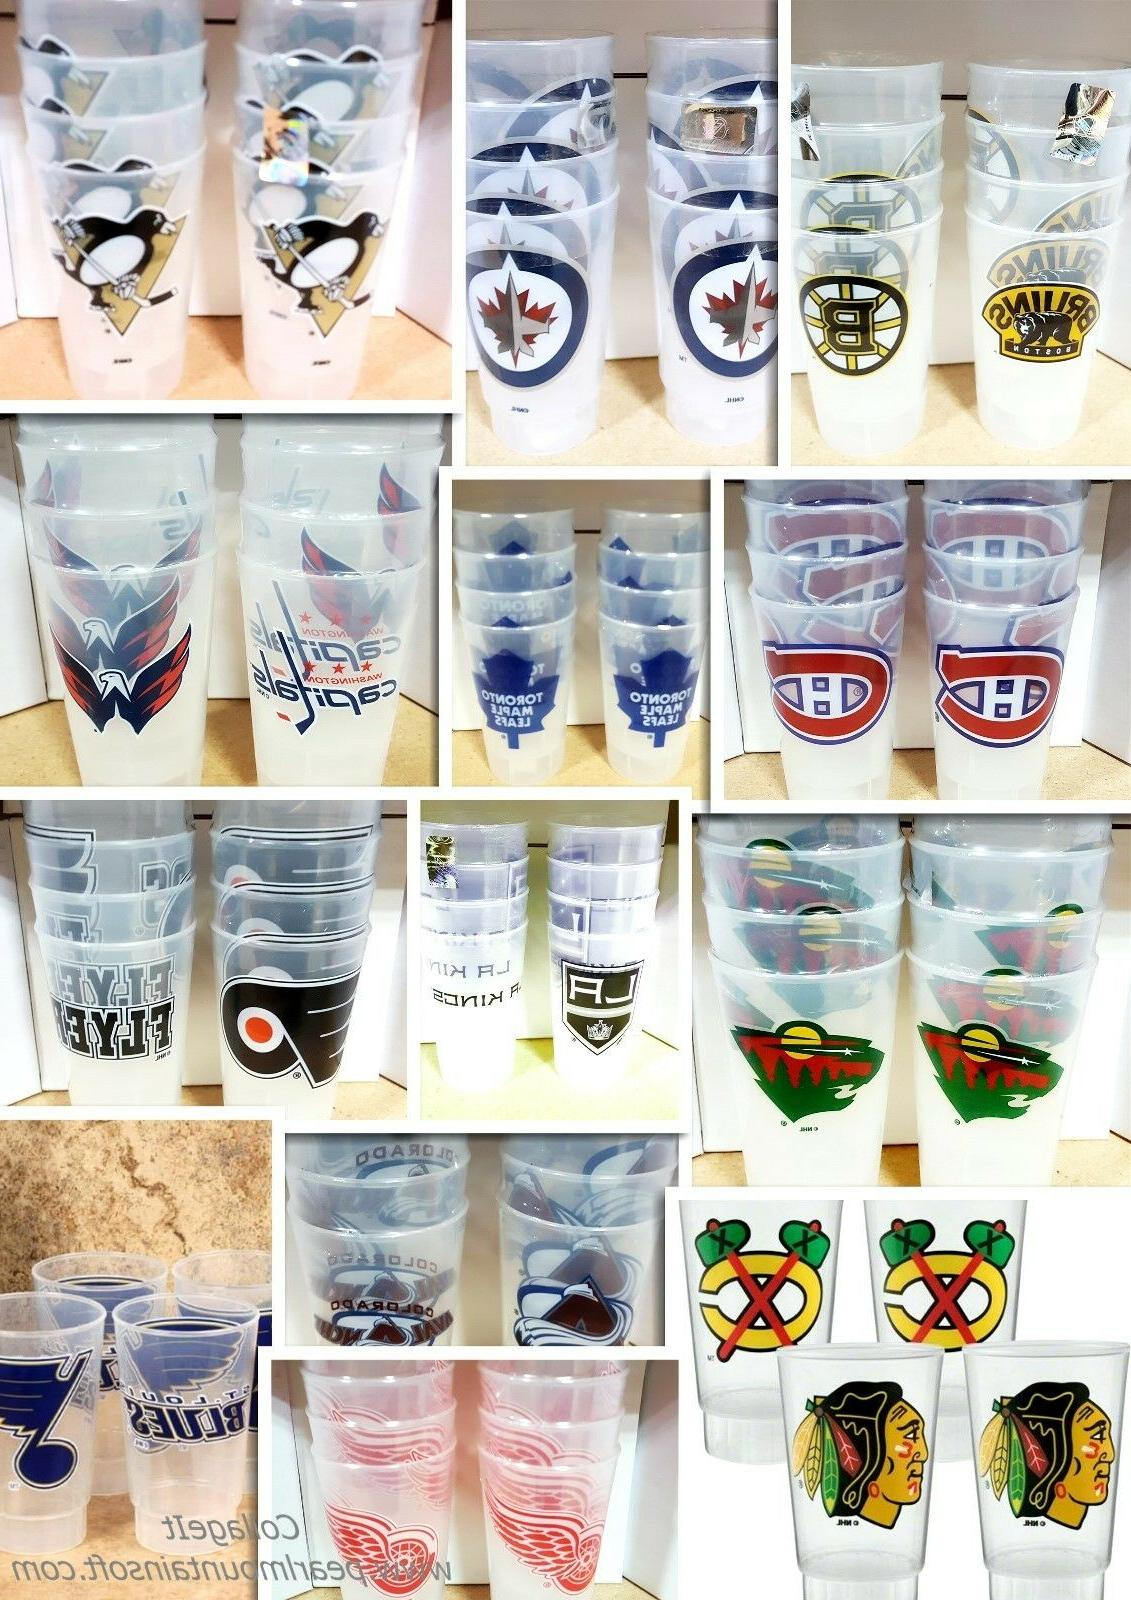 nhl cups 16 oz 4 pack set